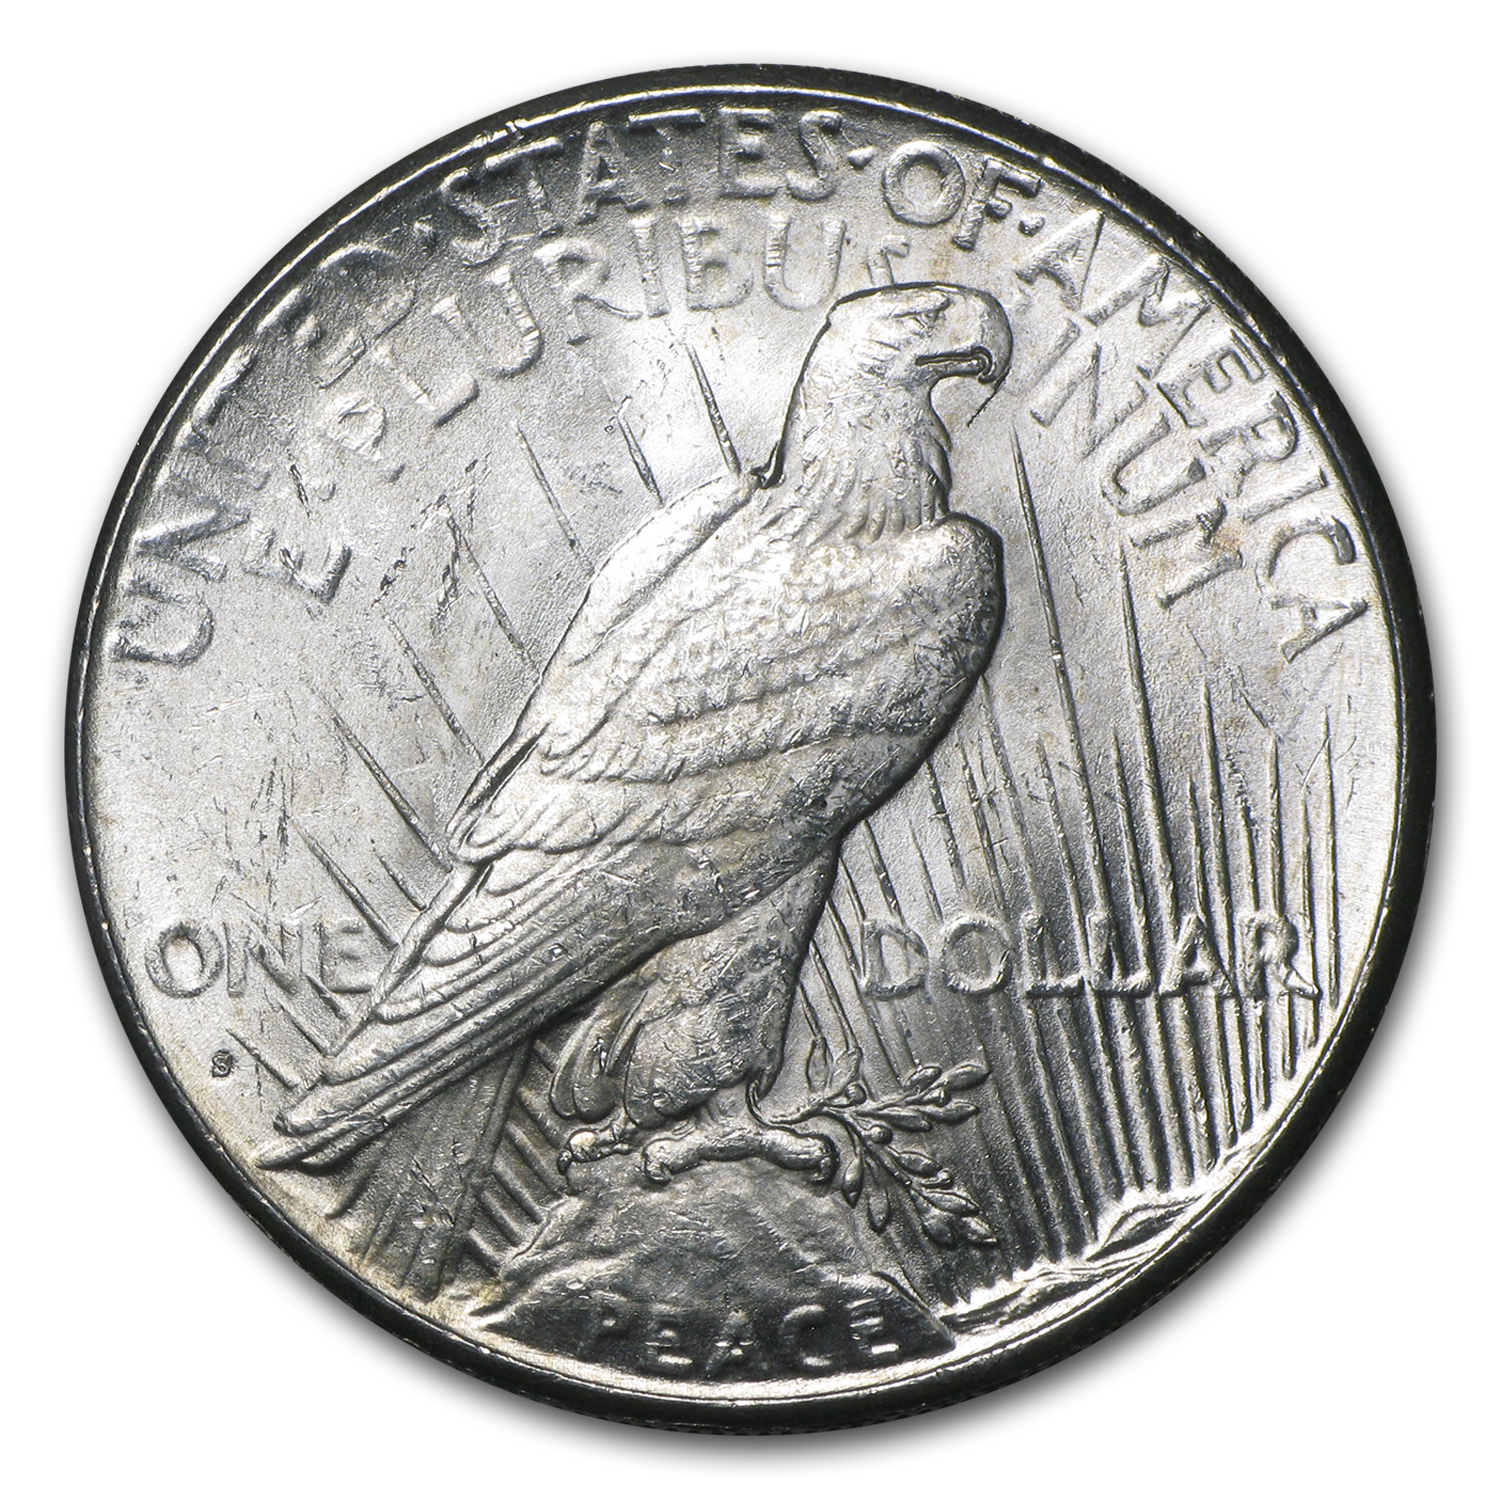 1925-S Peace Dollar - Almost Uncirculated